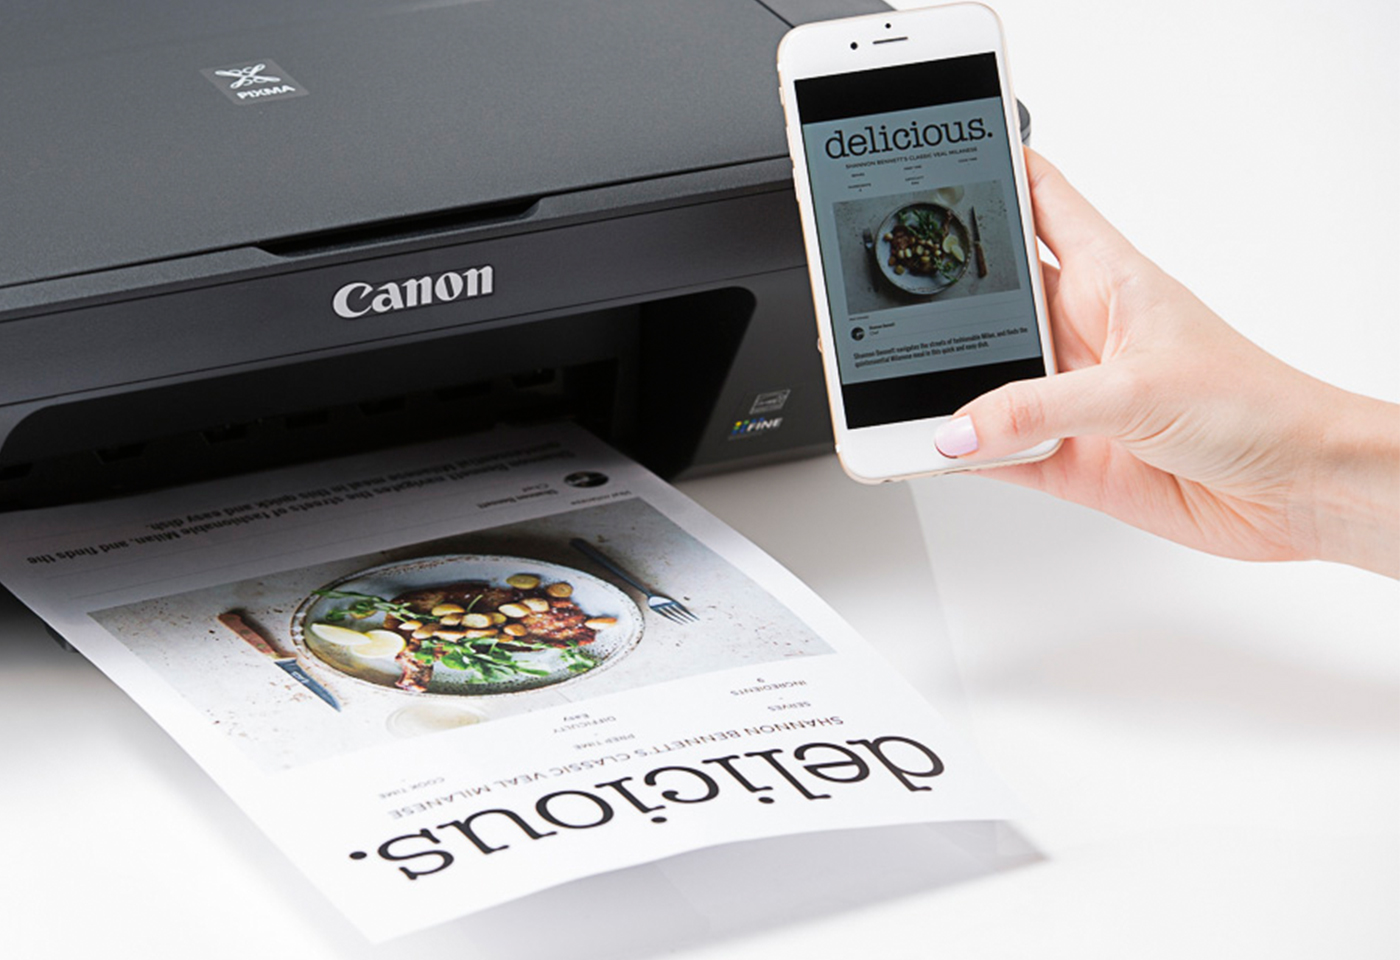 Printing from a smartphone